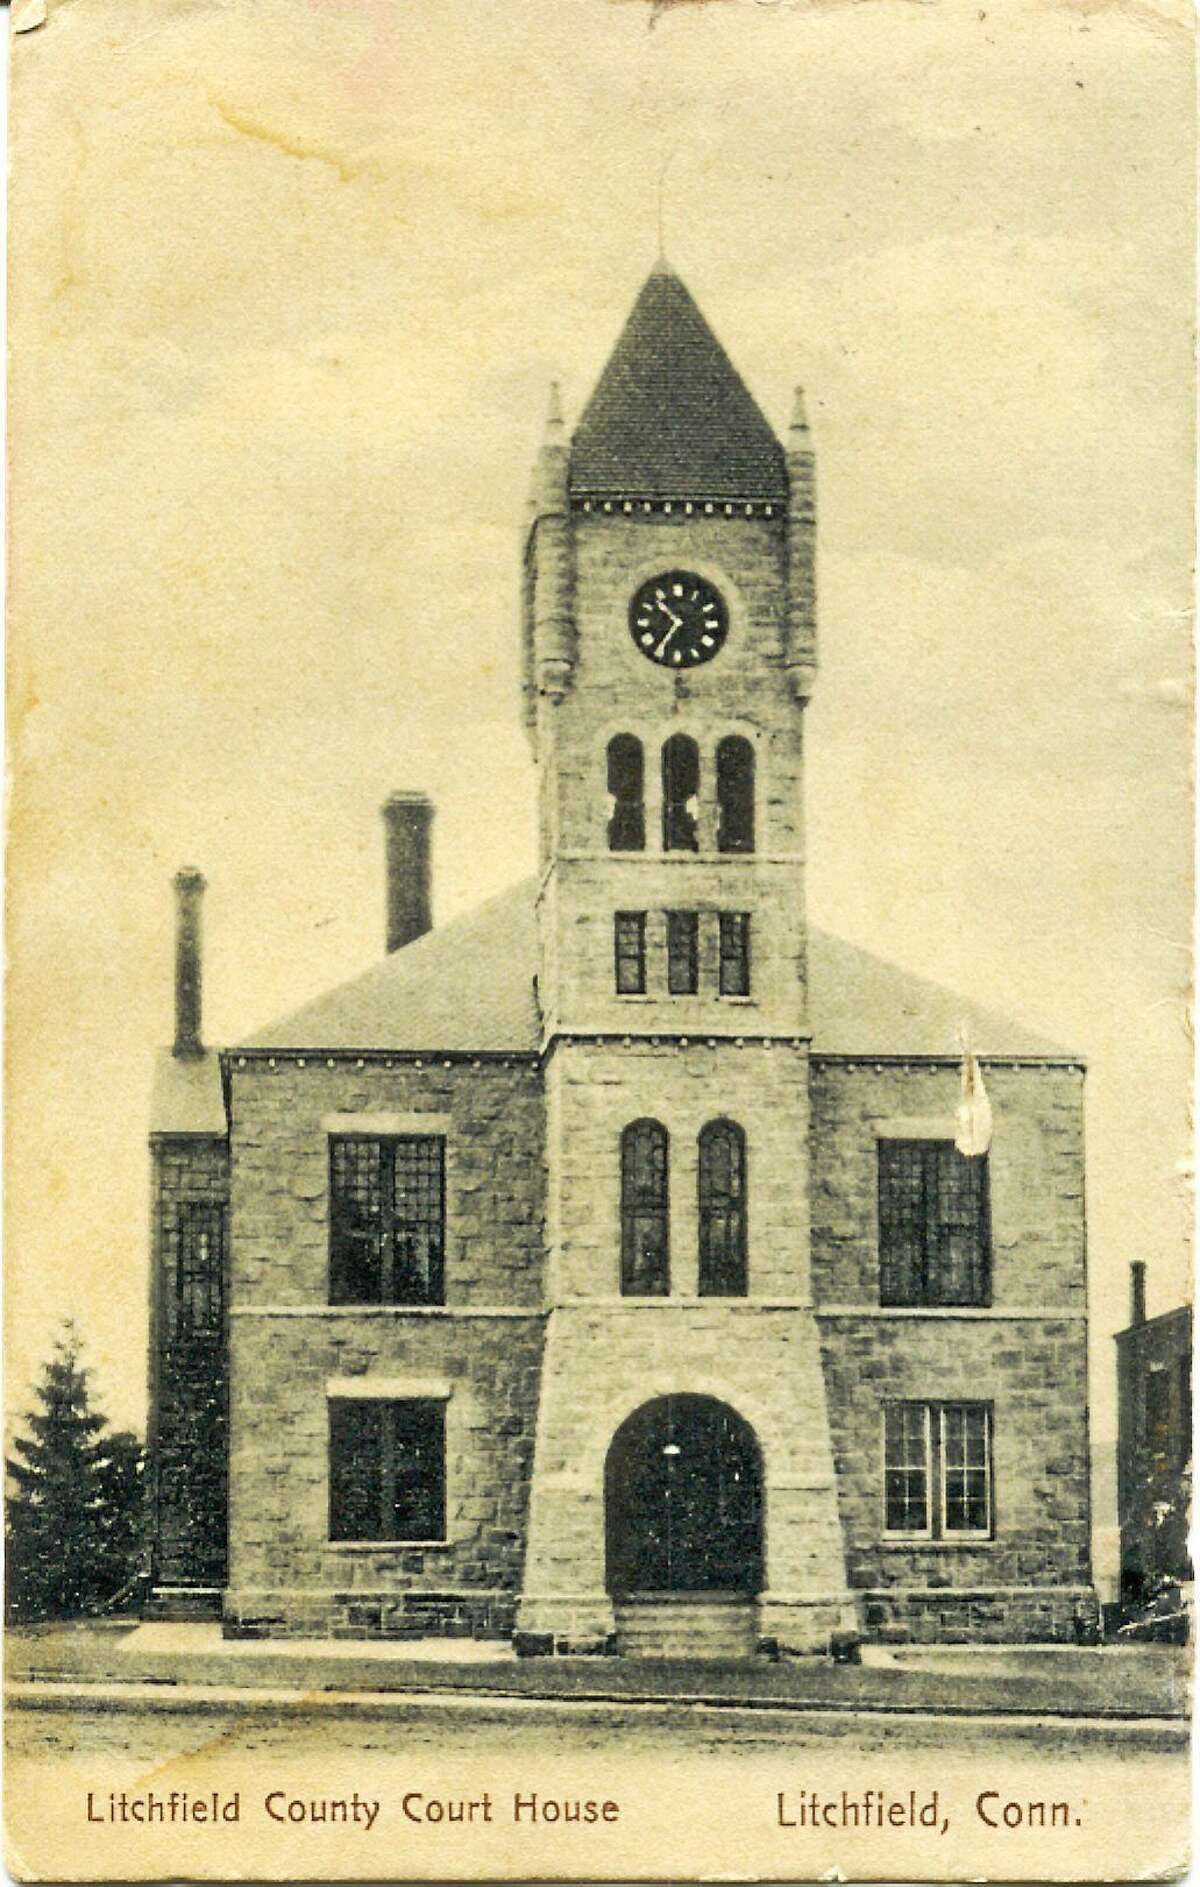 The Litchfield Judicial District Courthouse as seen from a 1908 postcard.